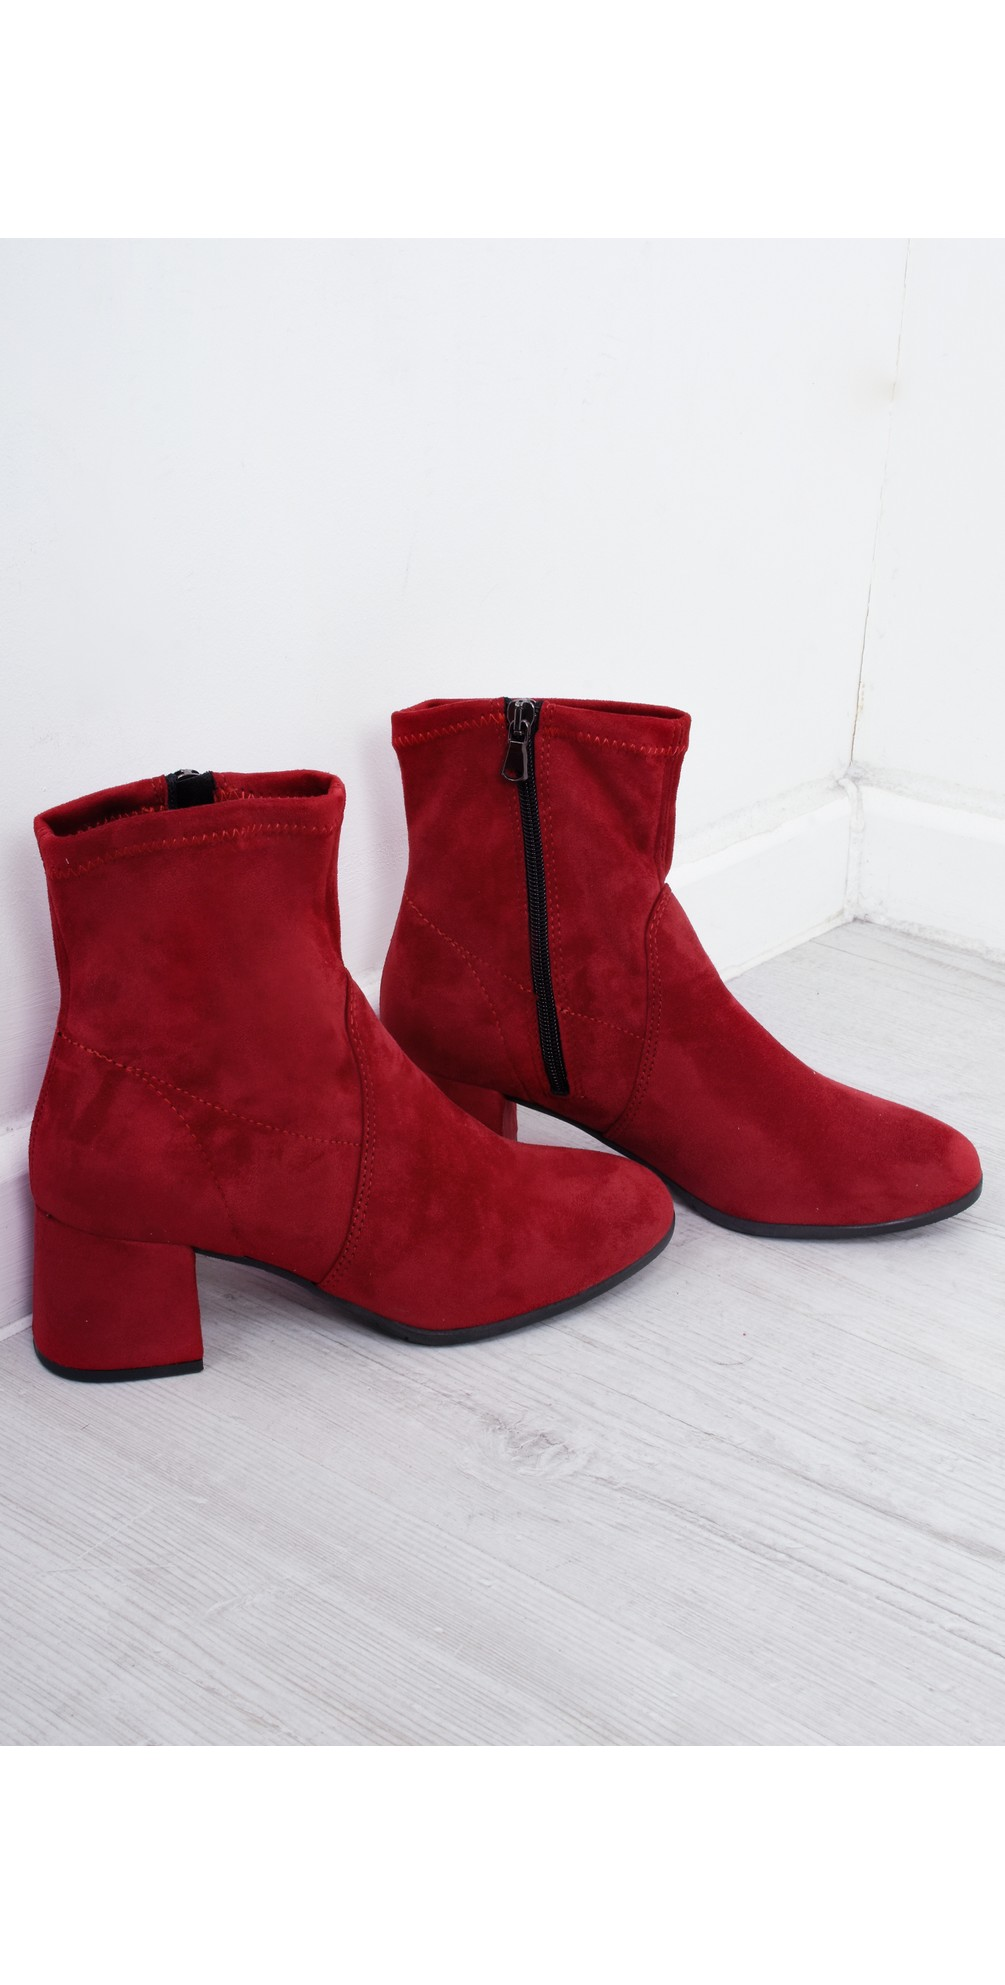 Tamaris Nadda Stretch Ankle Boot Block Heel in Lipstick